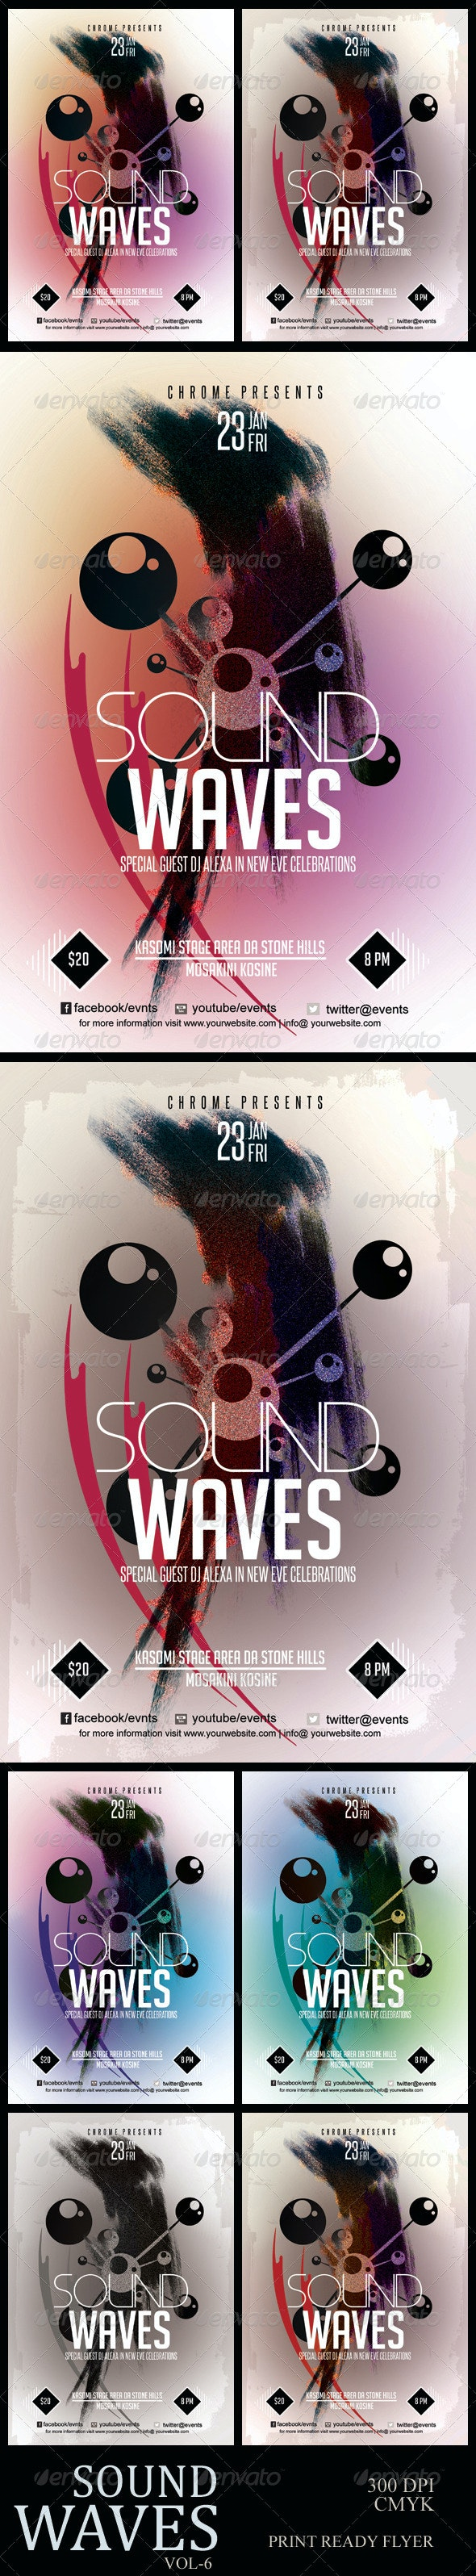 Sound Waves PSD Flyer 6 - Clubs & Parties Events